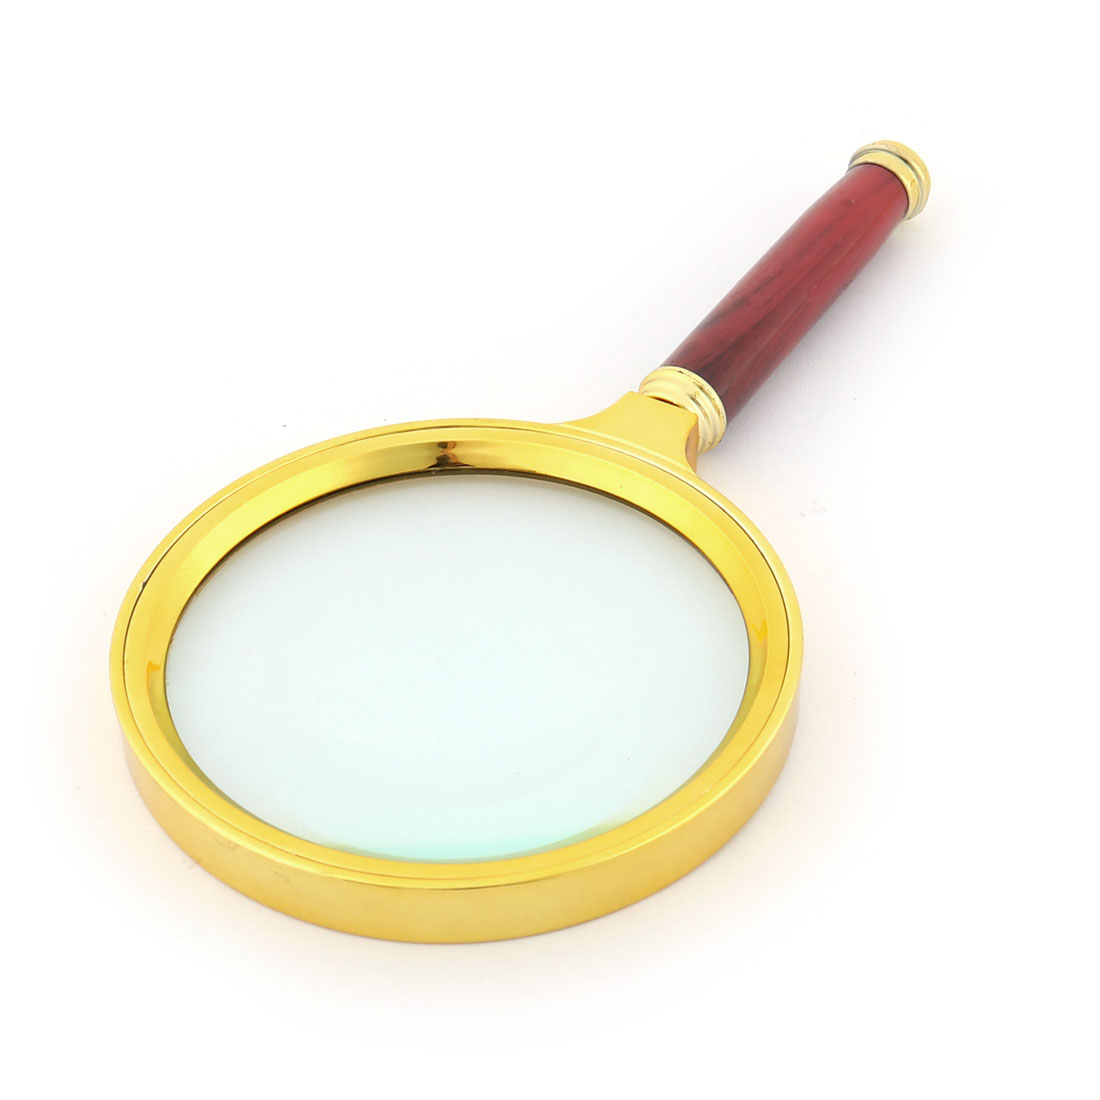 Plastic Frame 5X Magnifier 3 Inch Diameter Lens Jewelry Loupe